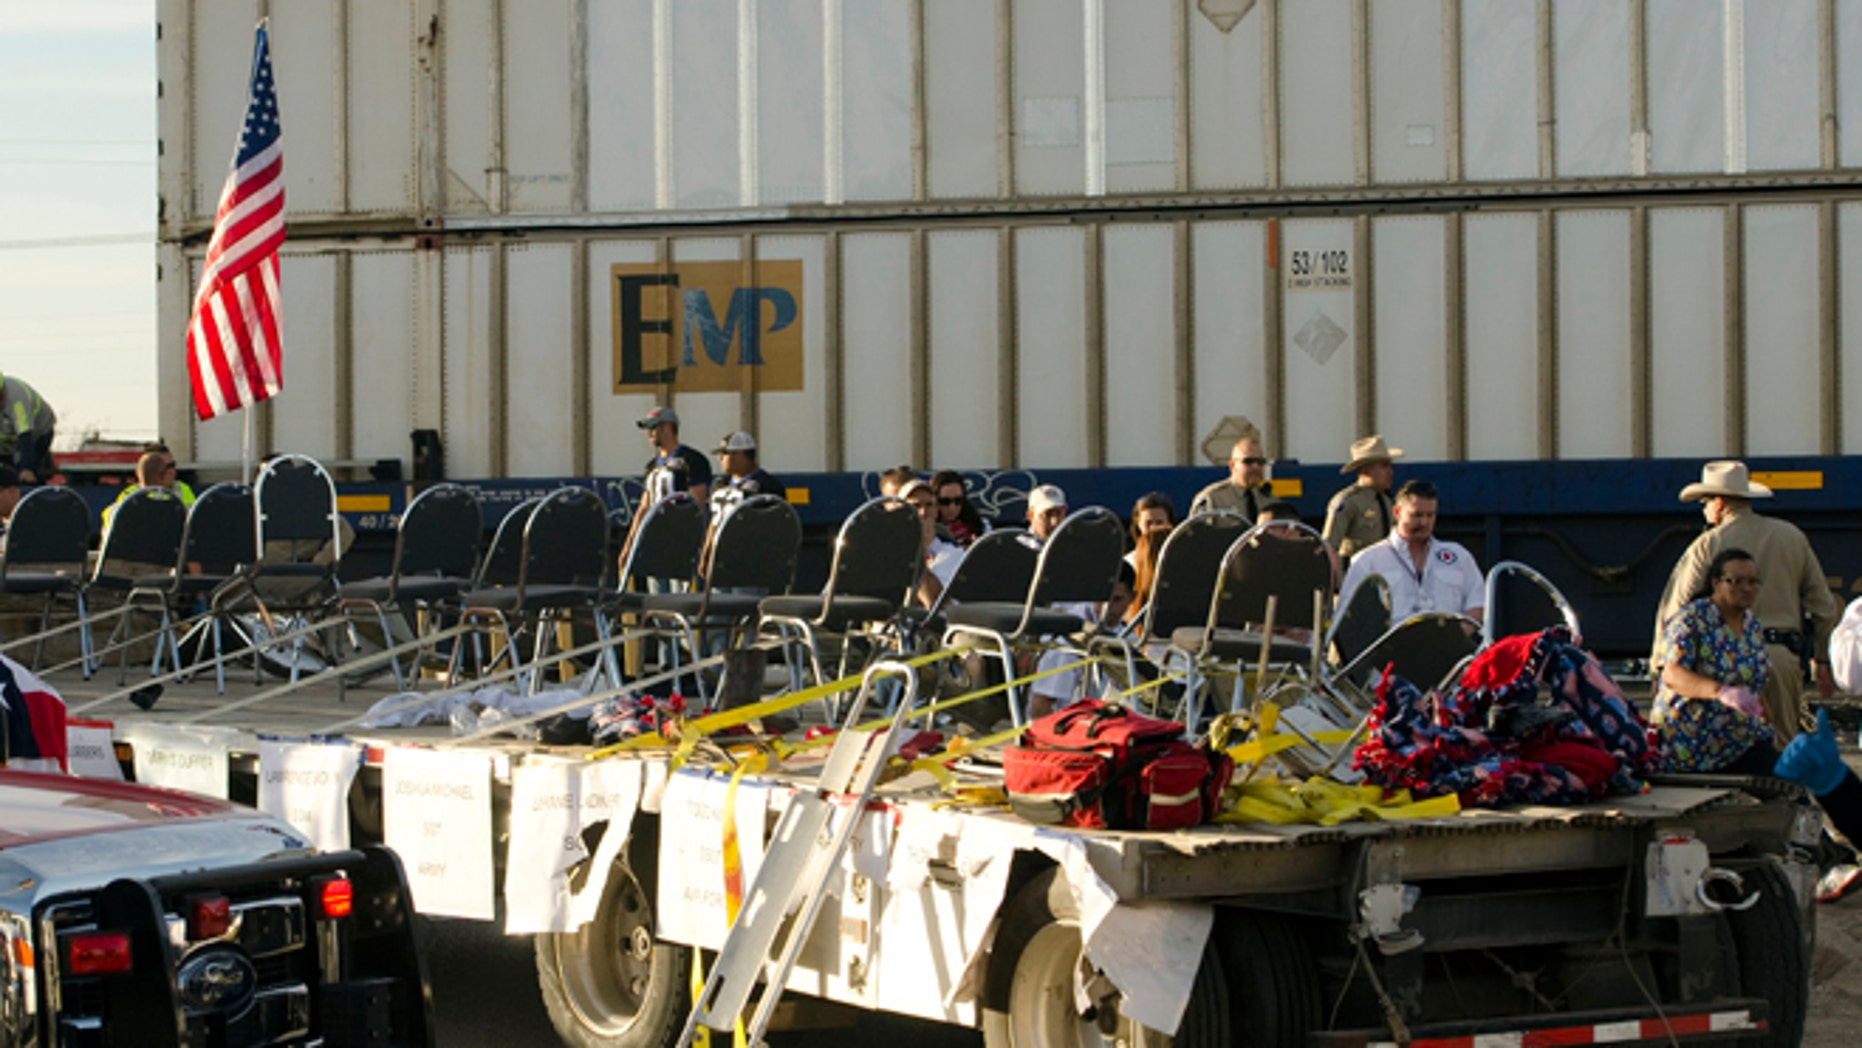 Nov. 15, 2012: In this file photo, authorities respond to an accident involving a trailer carrying wounded veterans that was struck by a train during a parade in Midland, Texas.